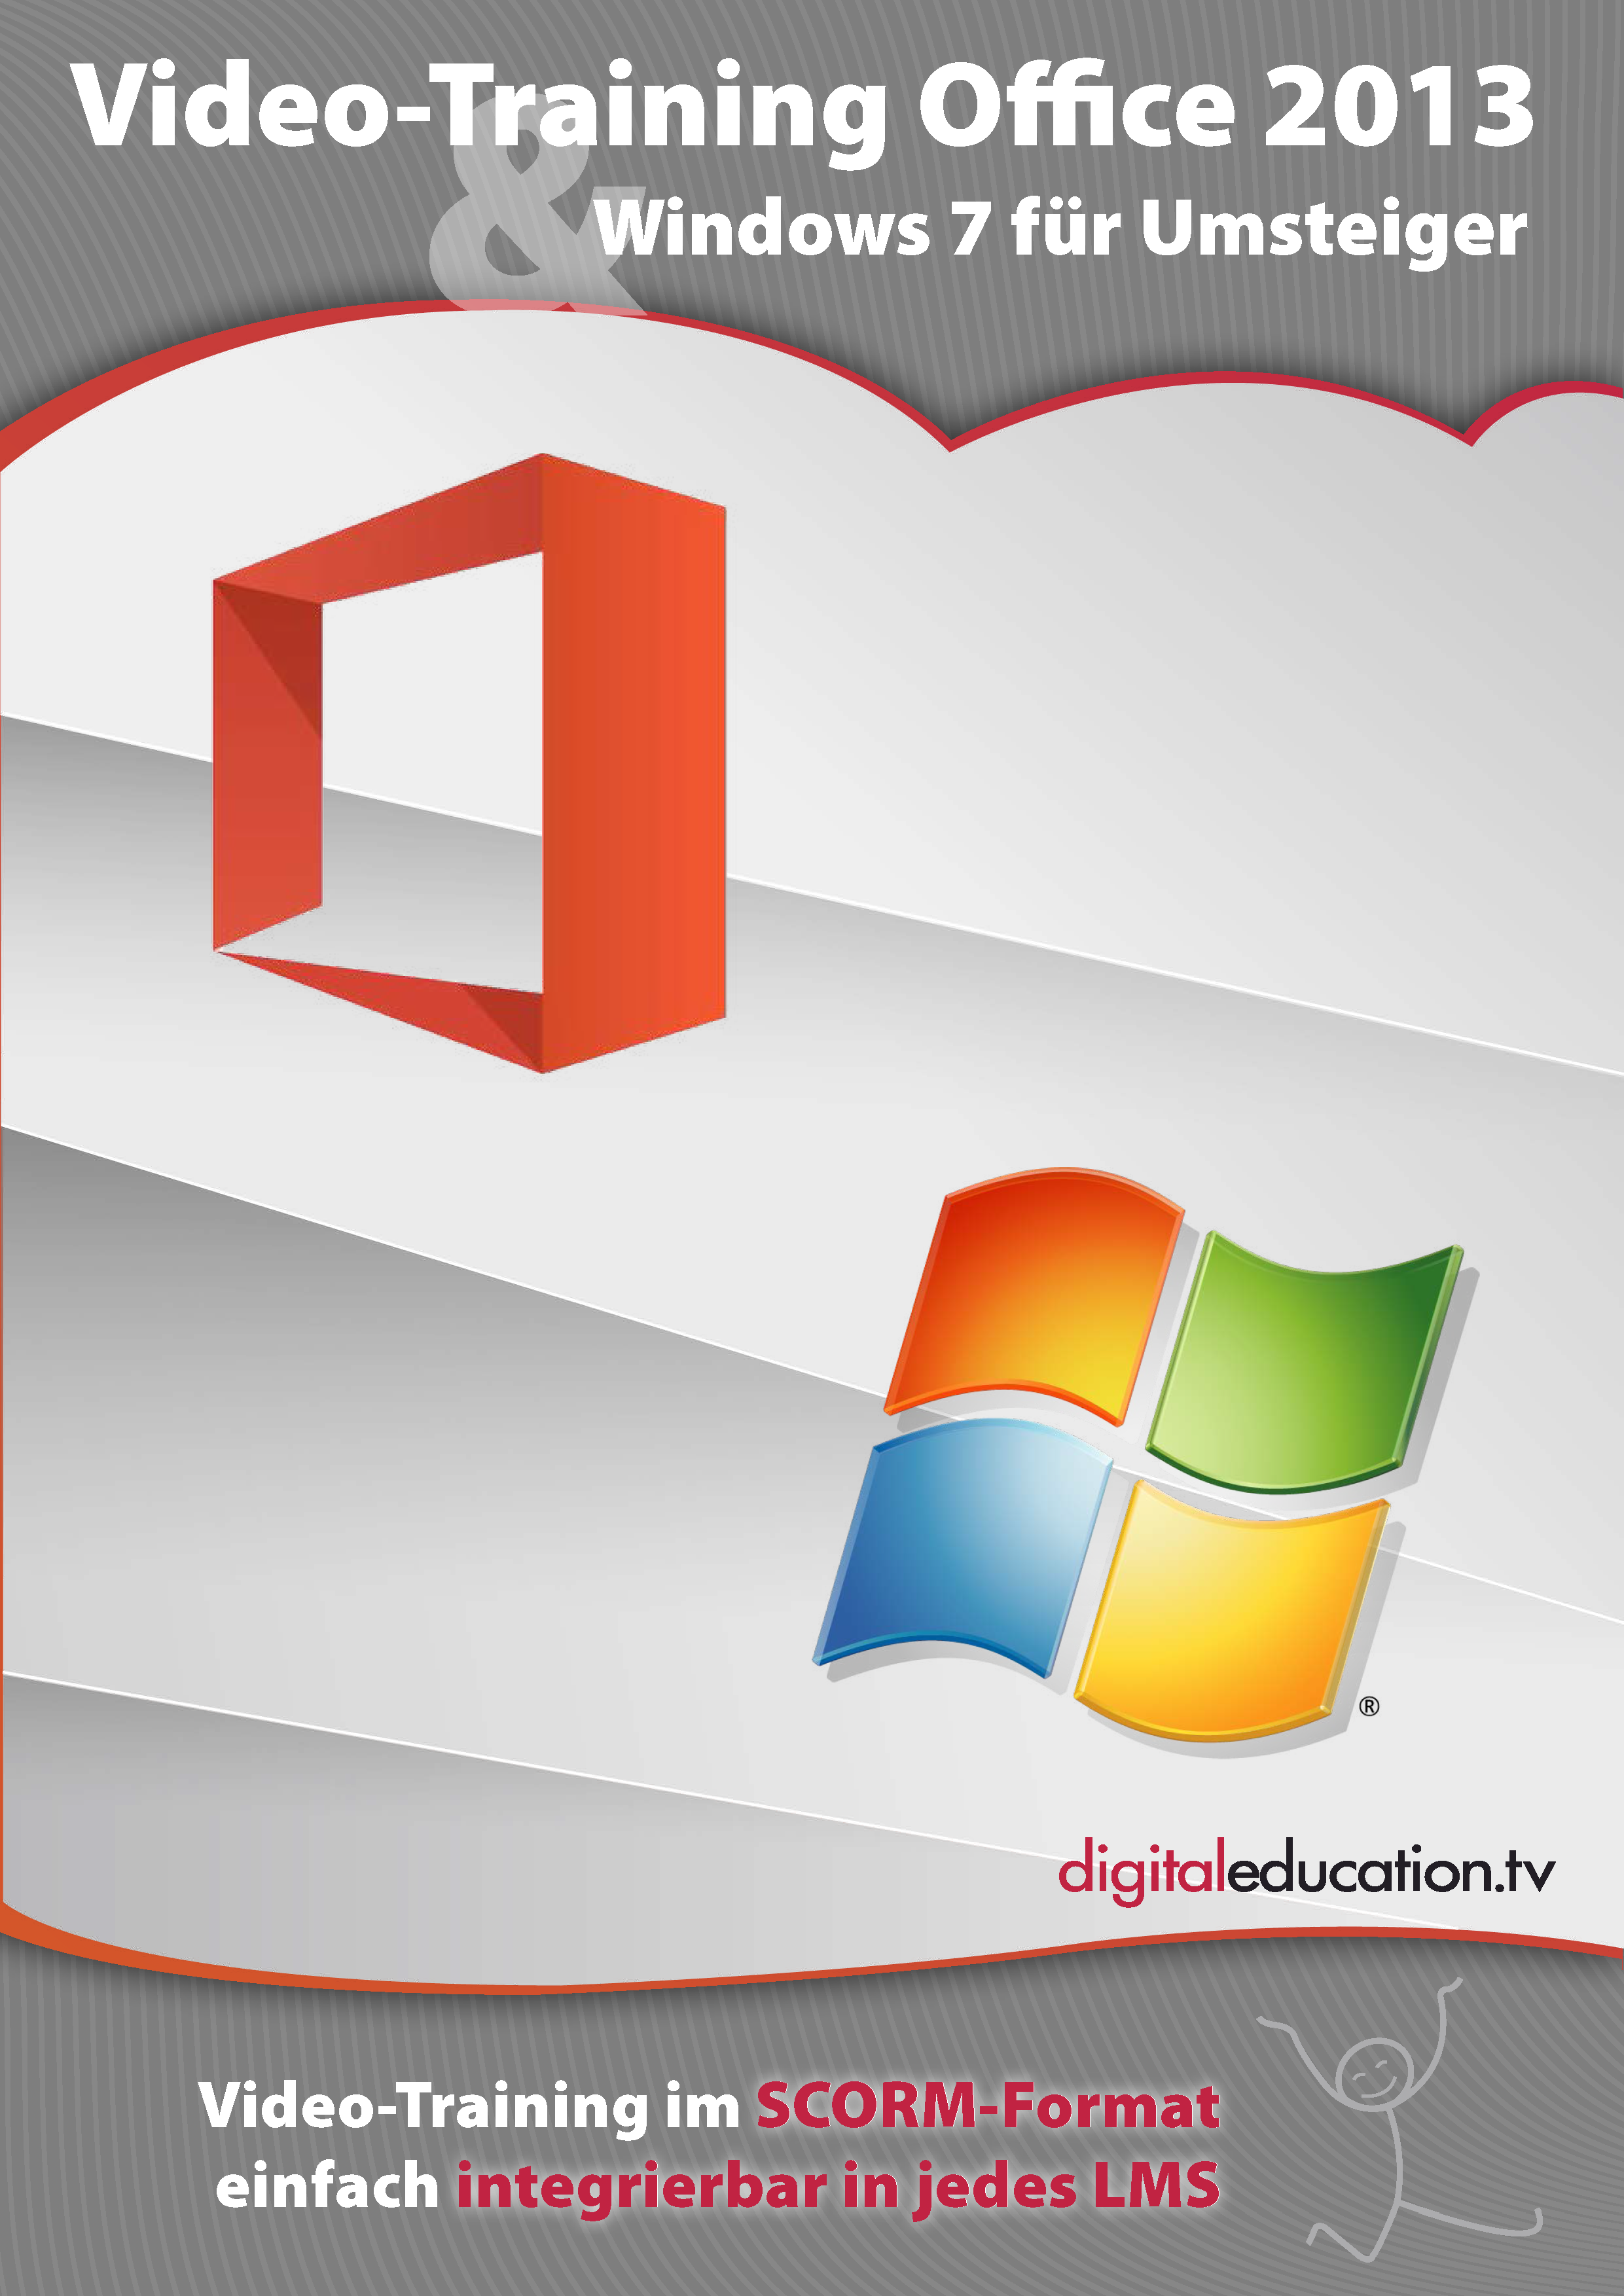 cover_office13&win7.png